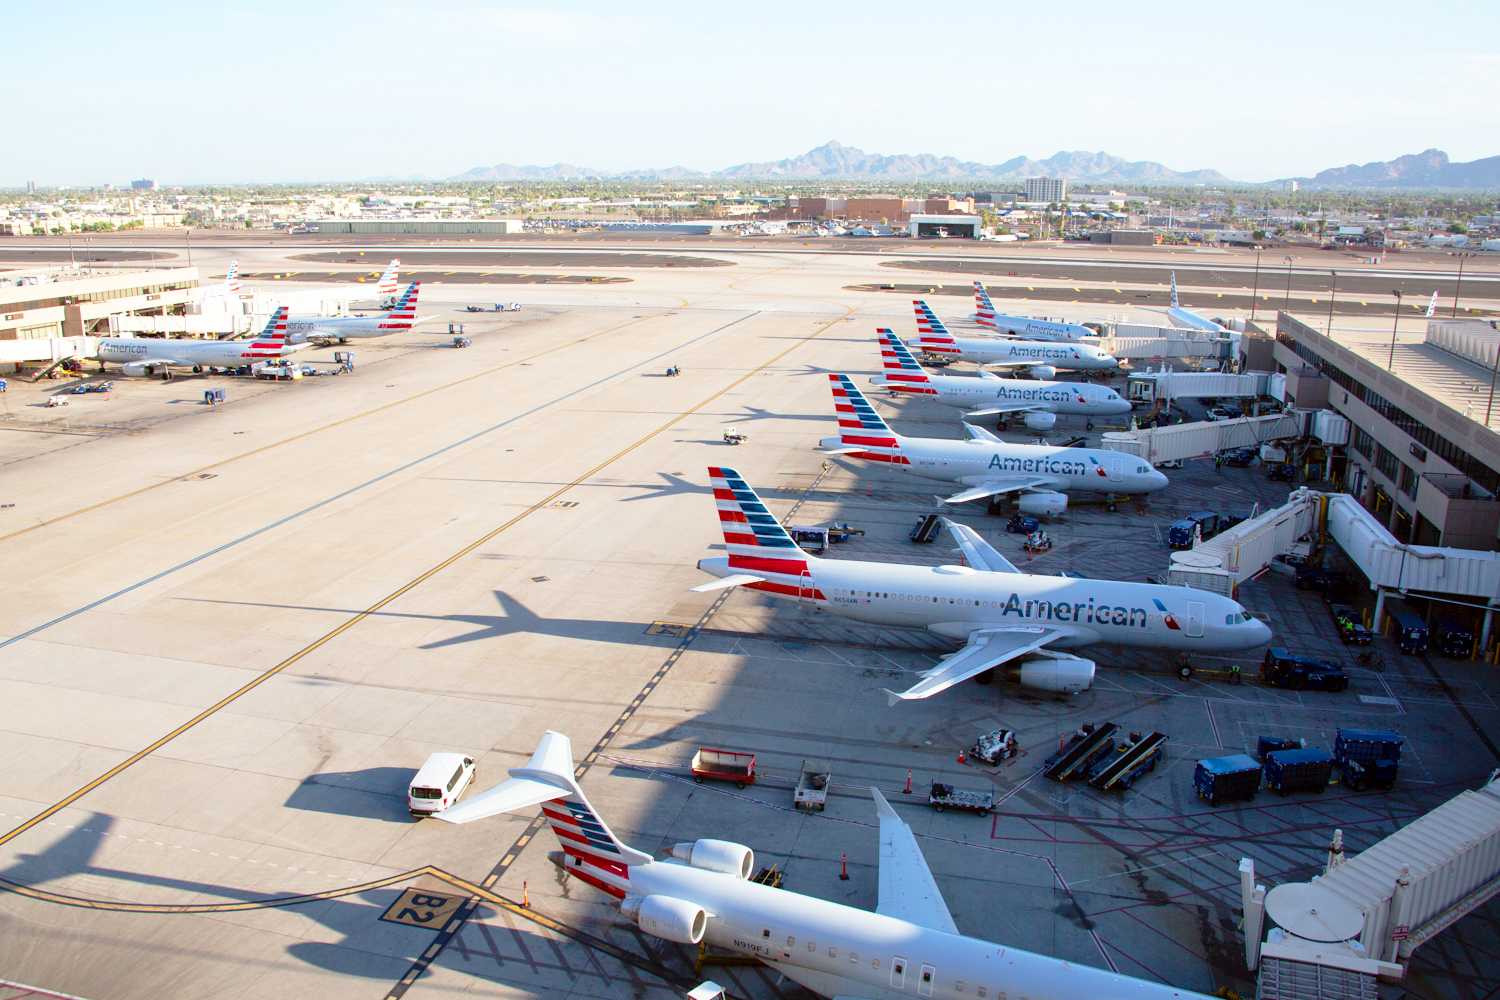 American Airlines at PHX